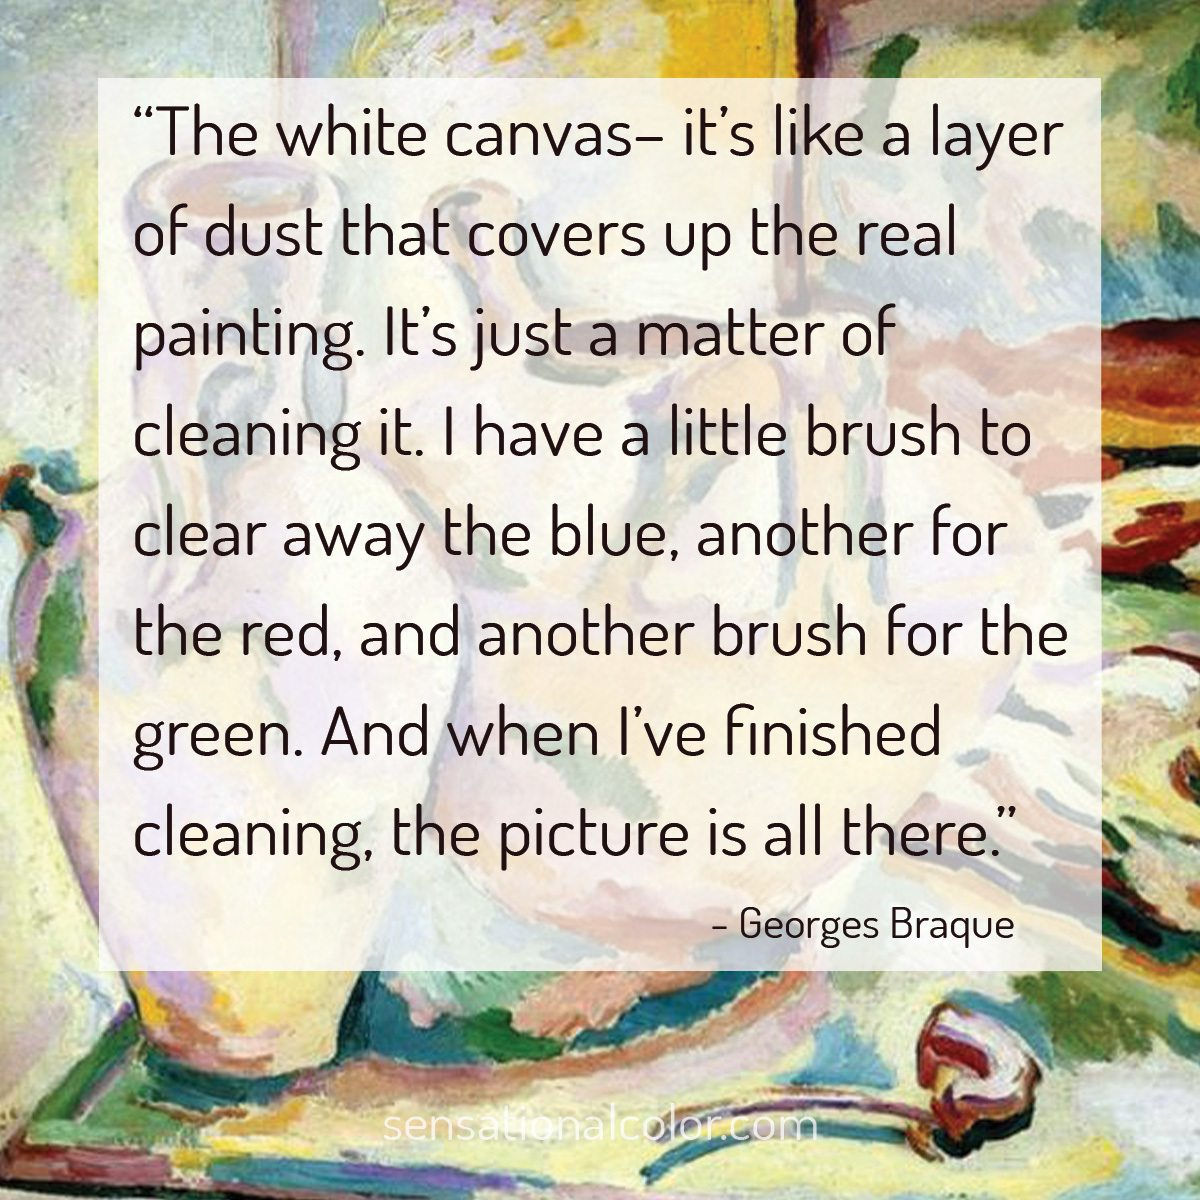 """The white canvas– it's like a layer of dust that covers up the real painting. It's just a matter of cleaning it. I have a little brush to clear away the blue, another for the red, and another brush for the green. And when I've finished cleaning, the picture is all there."" - Georges Braque"